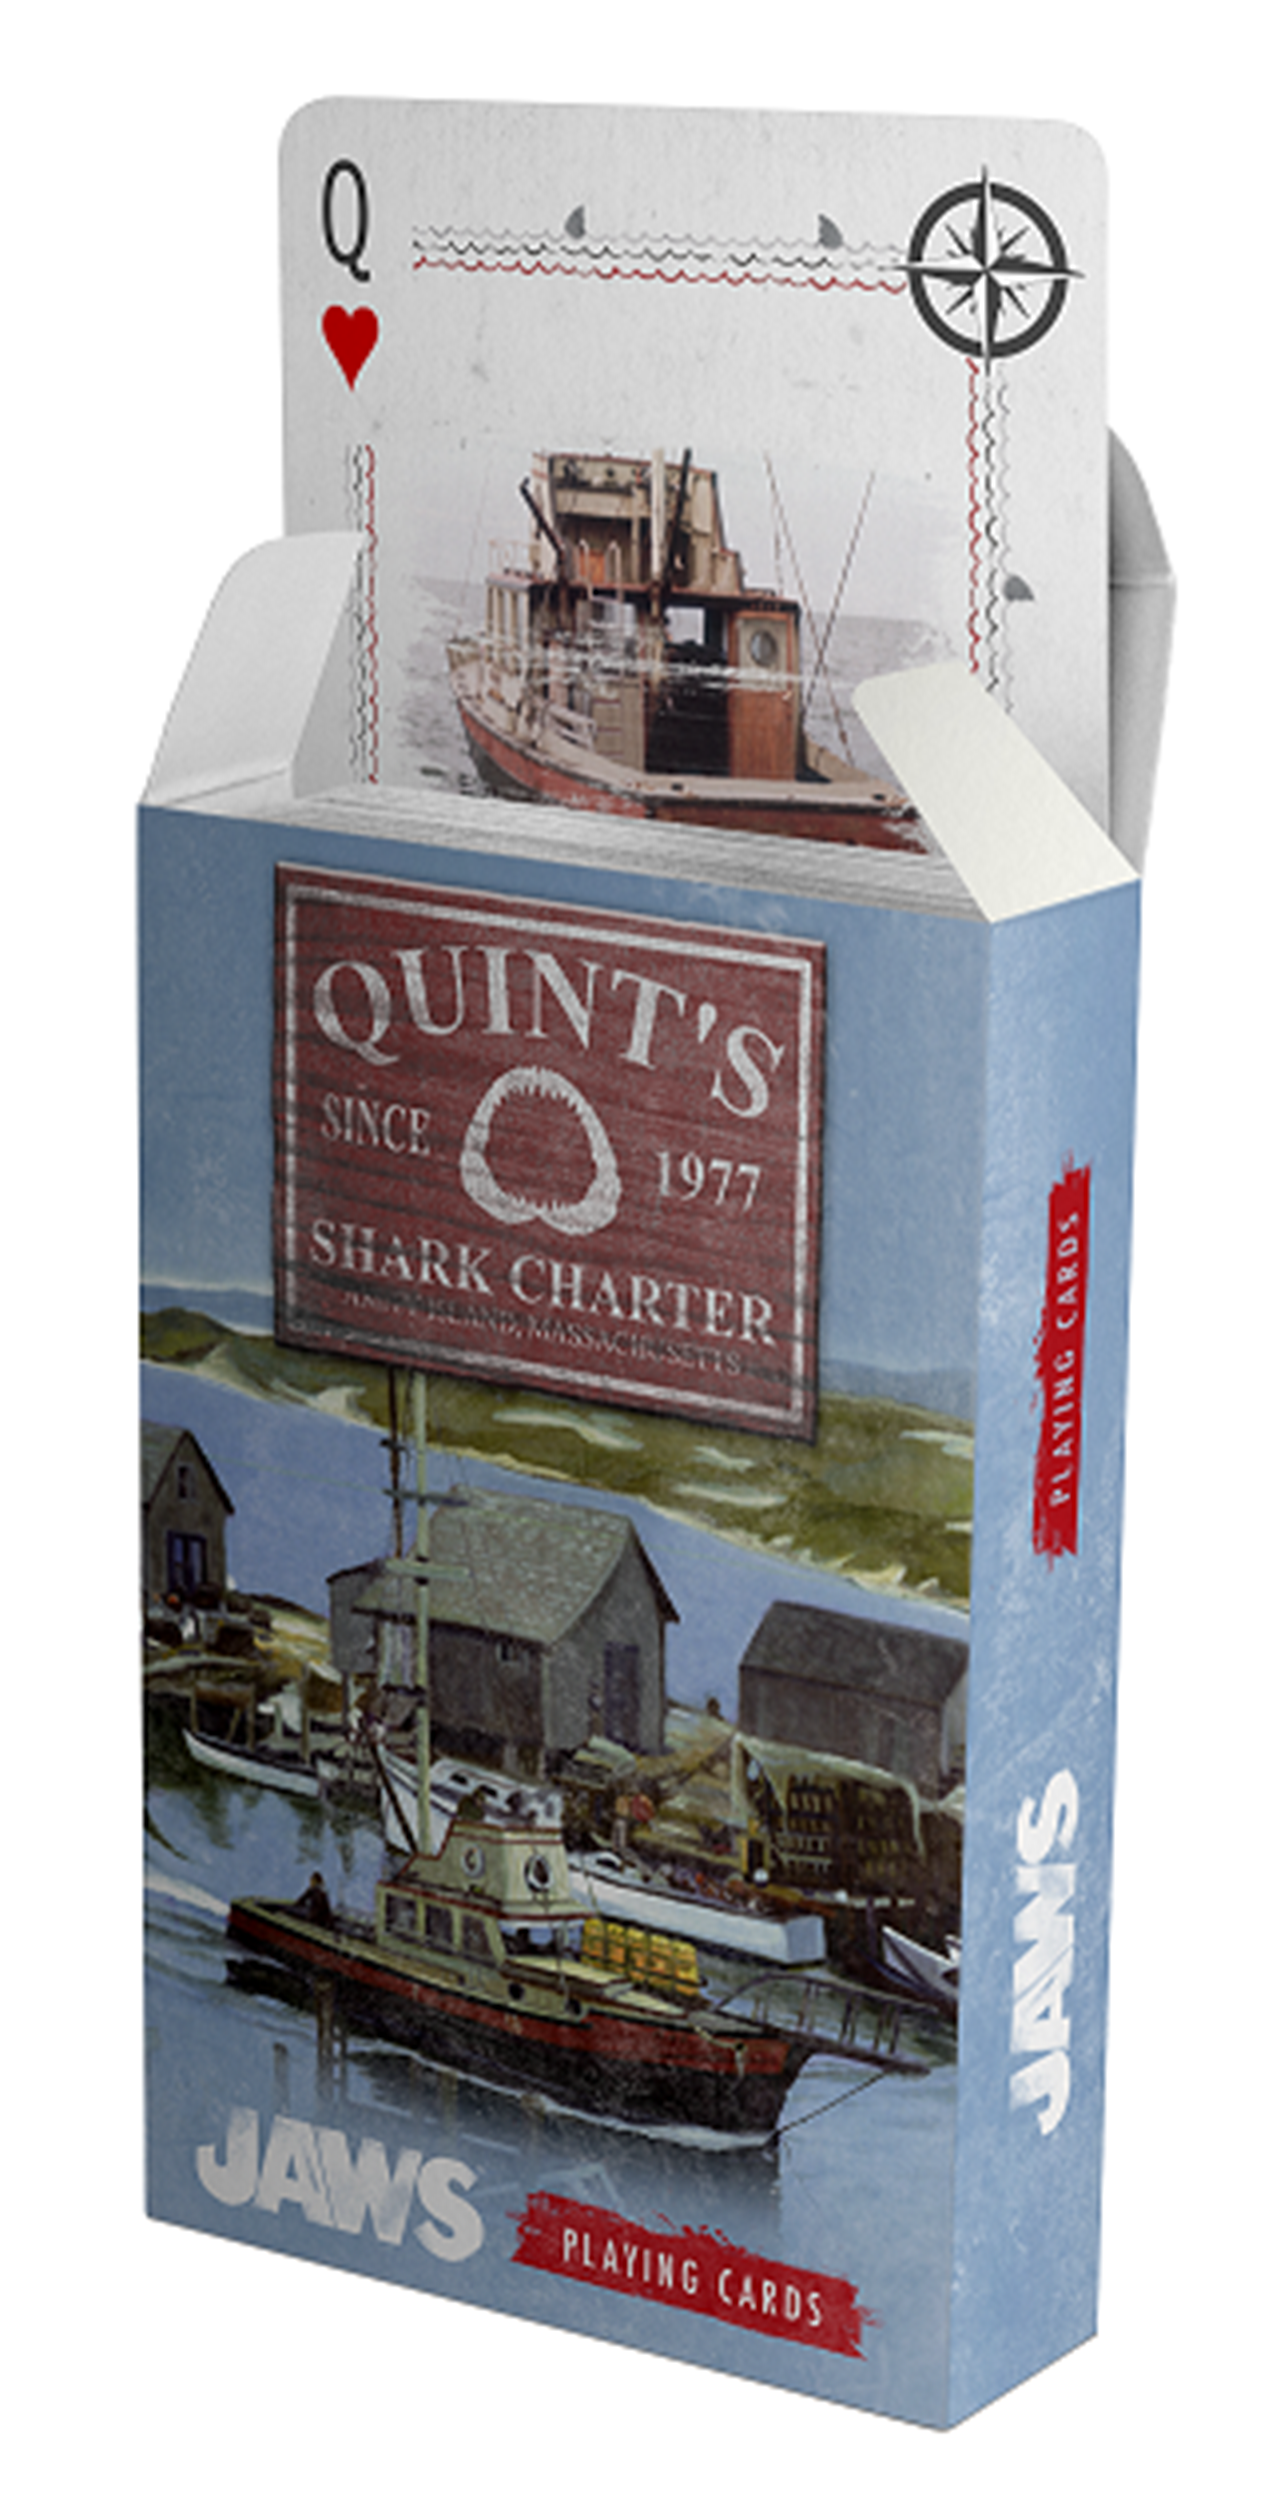 Jaws Playing Cards - 1